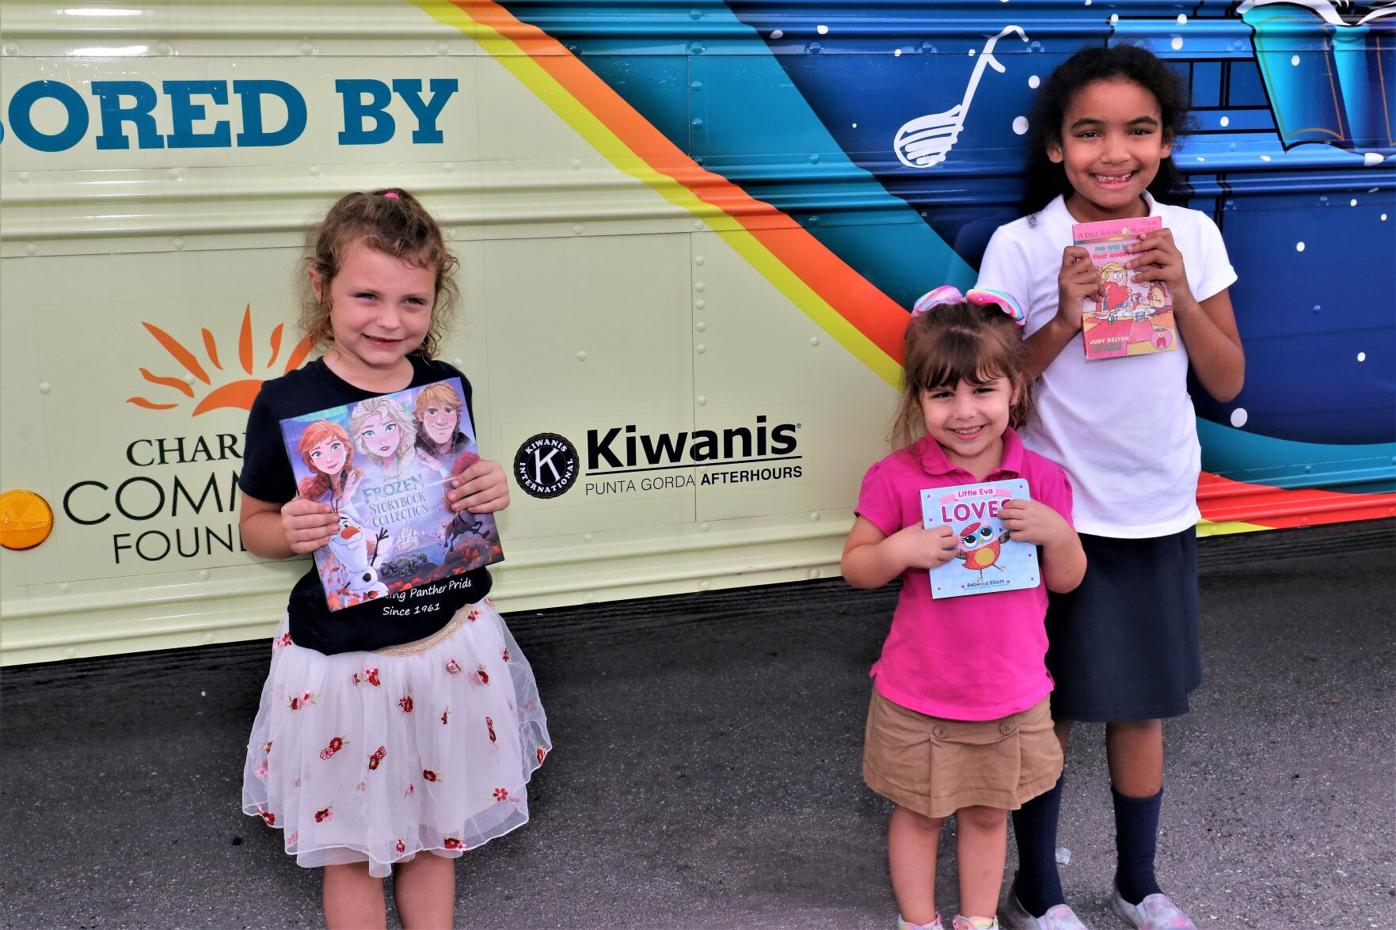 Local students get new books from Lizzy the Literacy Bus